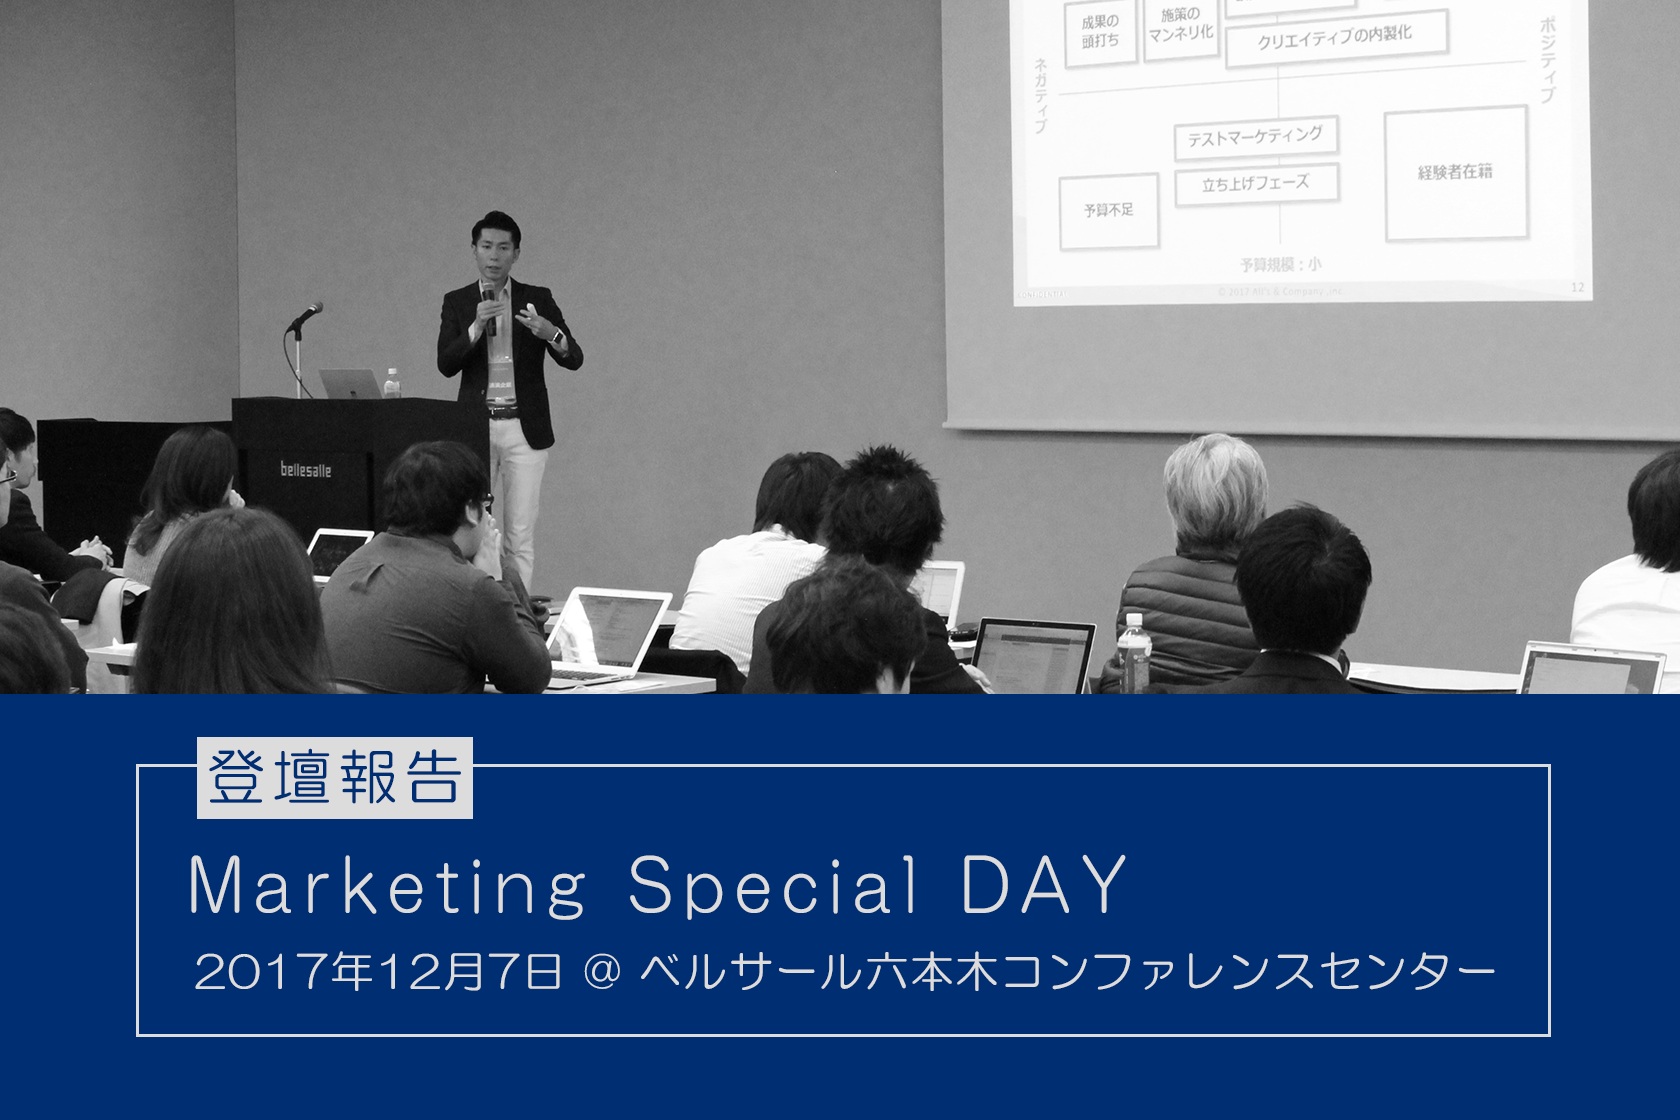 『Marketing Special DAY』に登壇しました